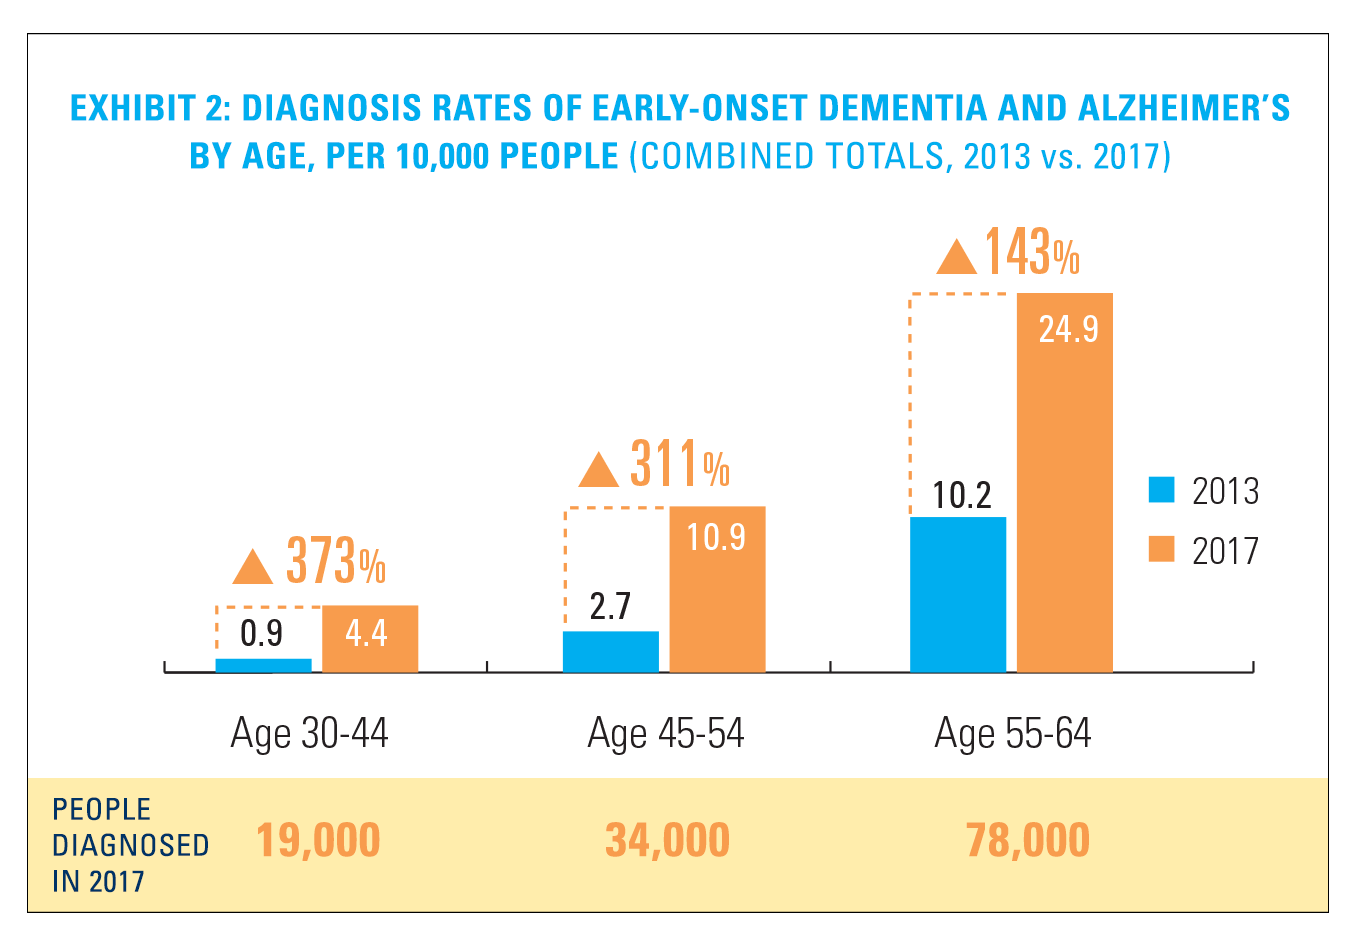 Exhibit 2: Diagnosis Rates of Early-Onset Dementia and Alzheimer's by Age, per 10,000 People (Combined Totals, 2013 vs. 2017)